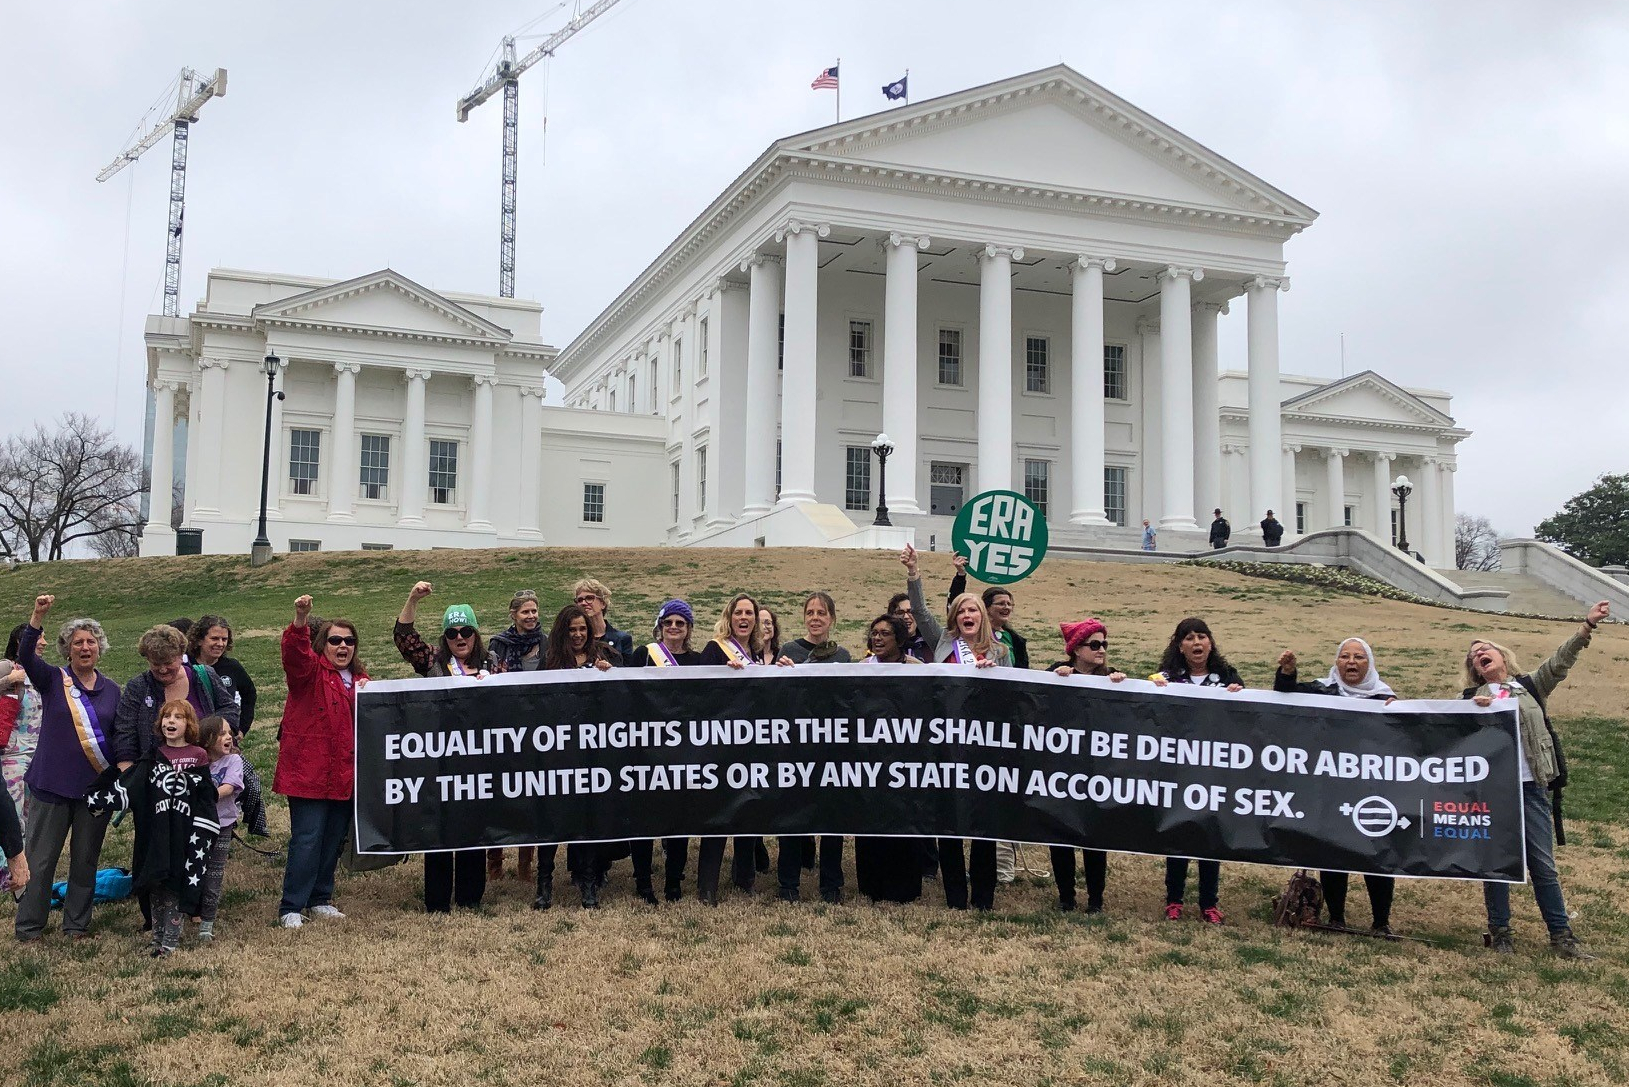 """Group of a couple dozen people with arms raised in victory behind a long banner that reads, """"Equality of Rights Under the Law Shall Not Be Denied or Abridged by the United States or by Any State on Account of Sex"""" standing in front of the Virginia State Capitol."""